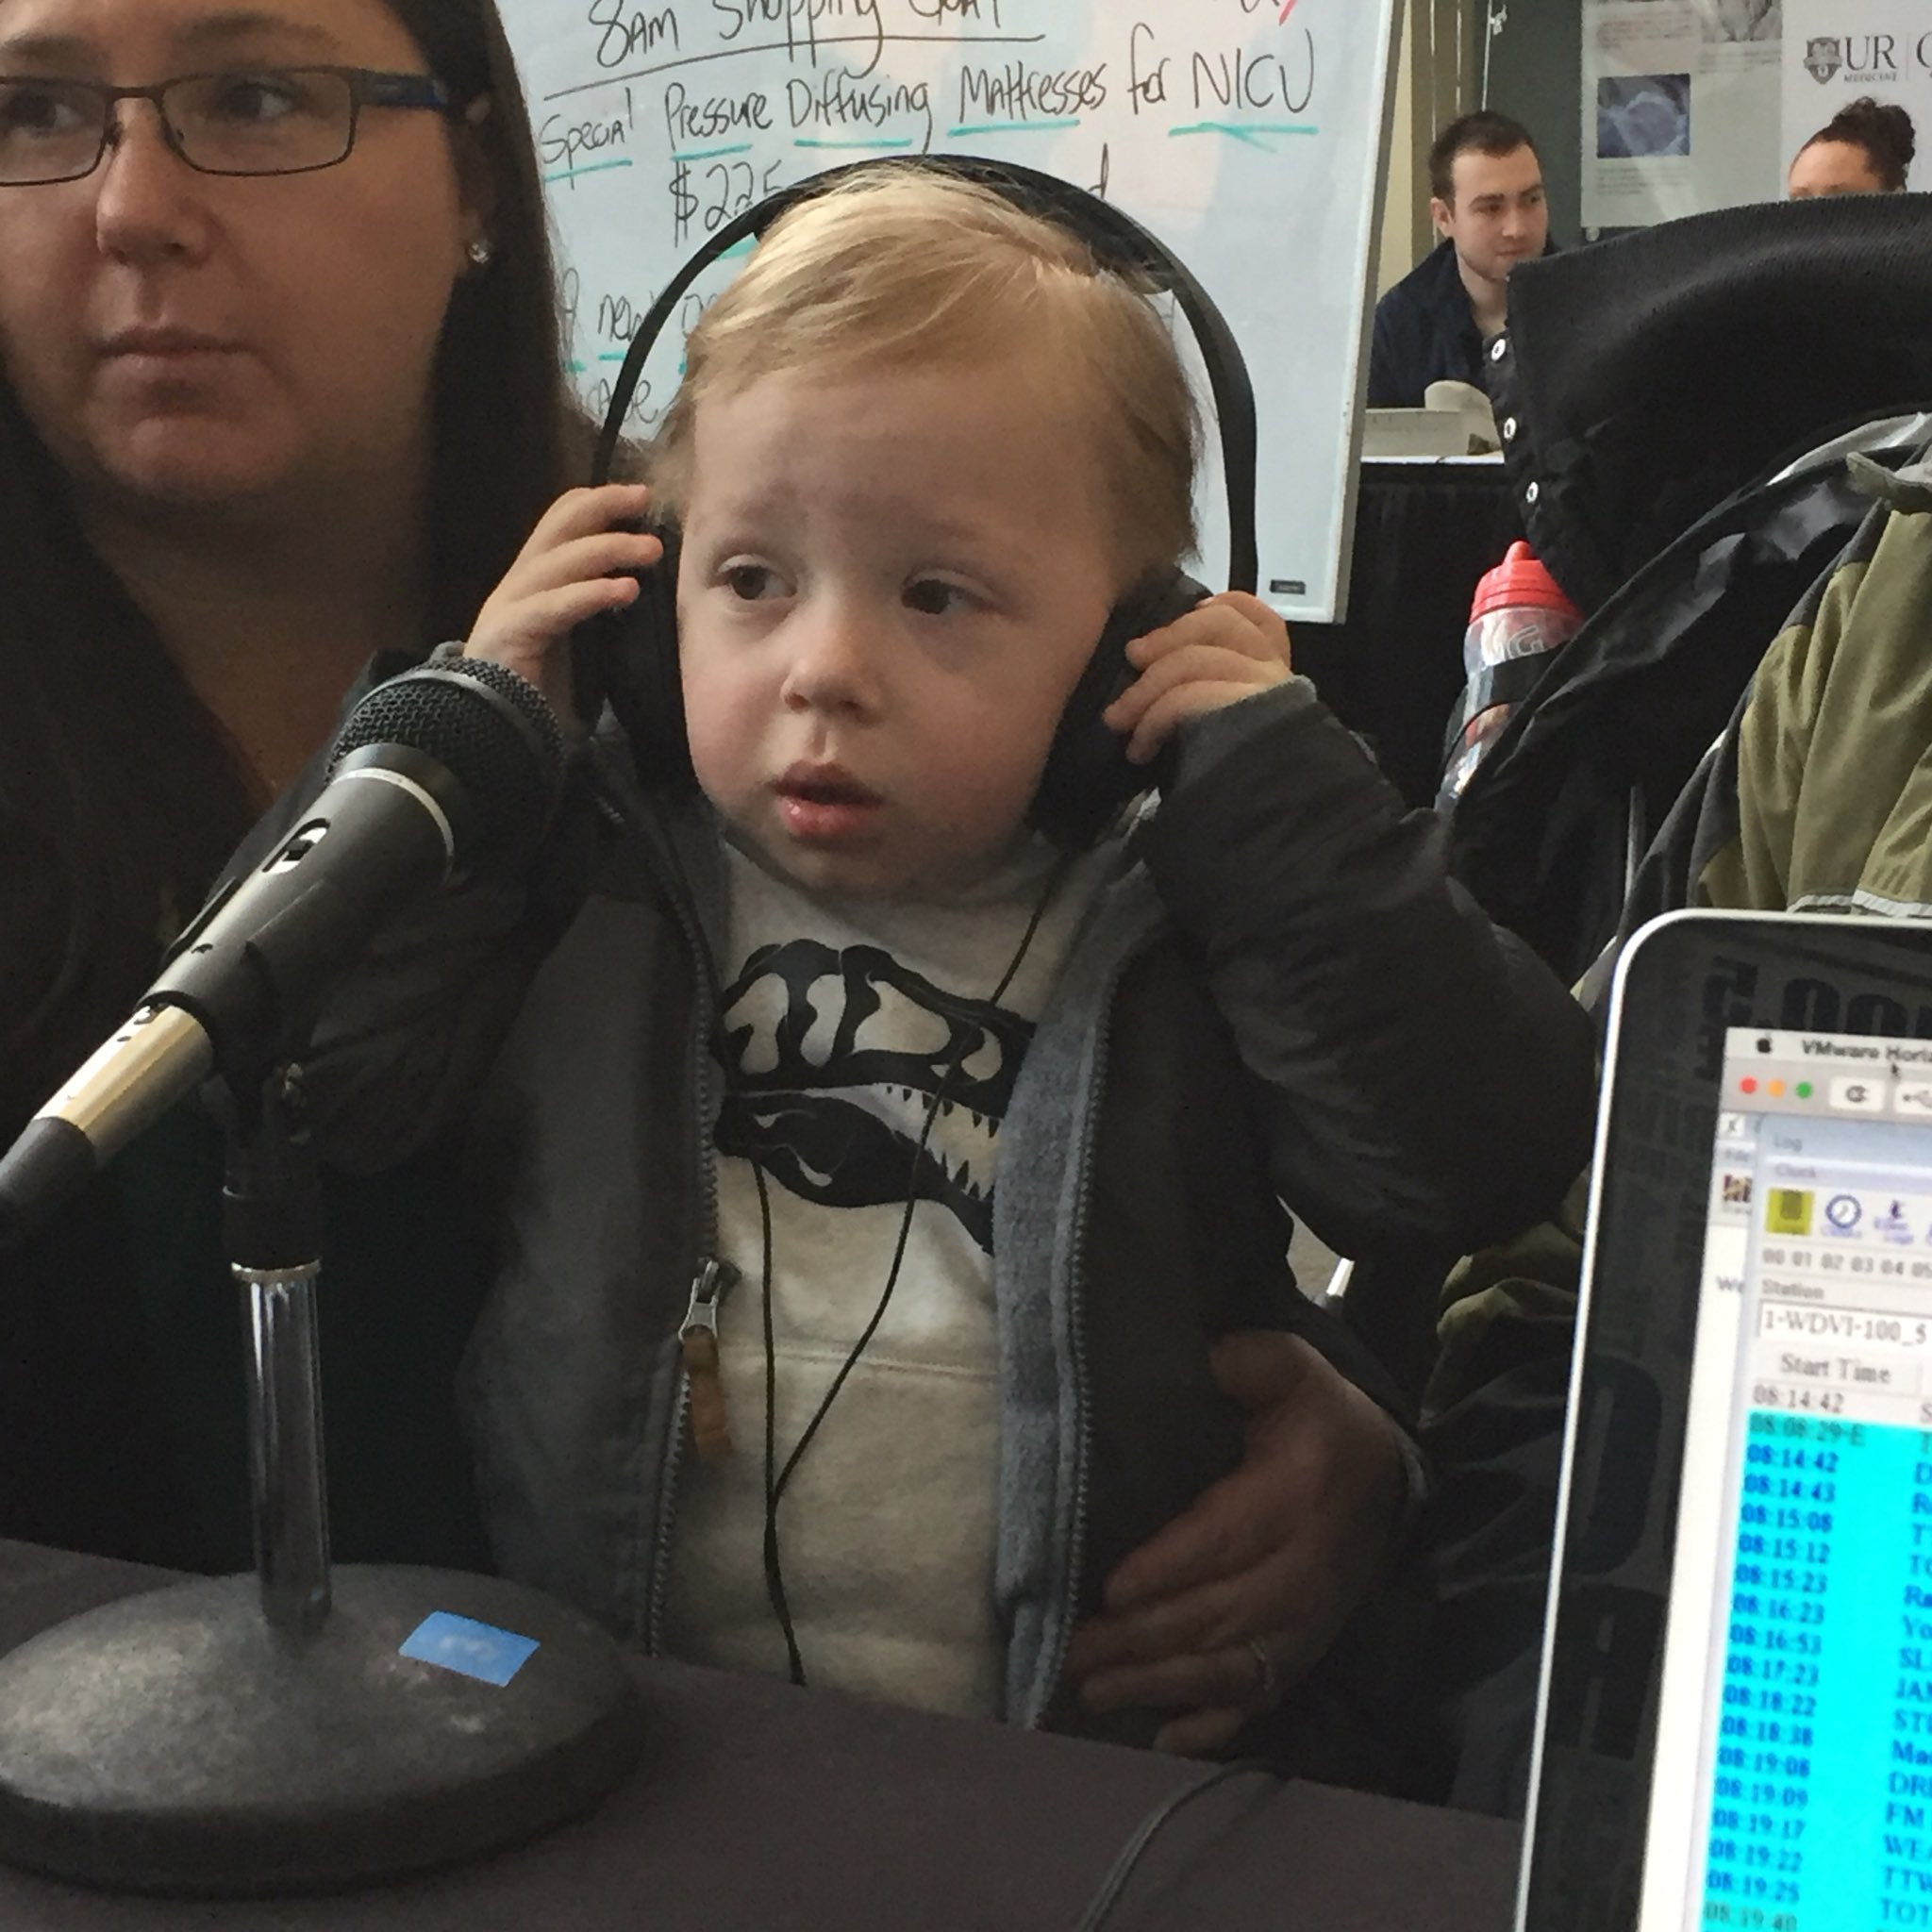 This is Ryan! He just turned three! But he wouldn't be here if it wasn't for your donations to @URMed_GCH - call 241-KIDS. #DriveForMiracles https://t.co/DKW5Hmq9kL